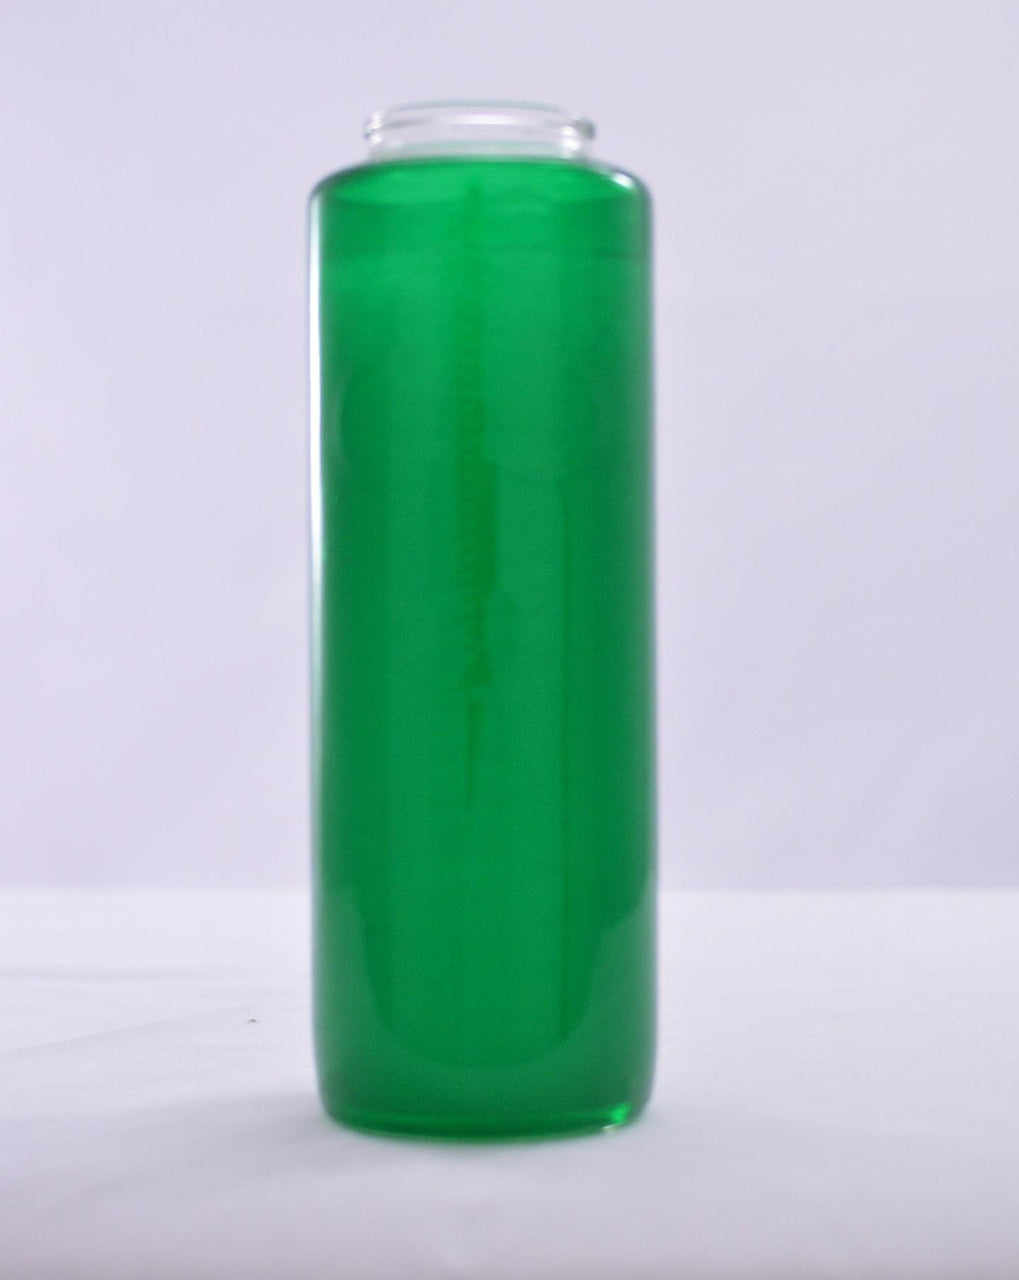 Glass Offering Candles - 6 Day Green